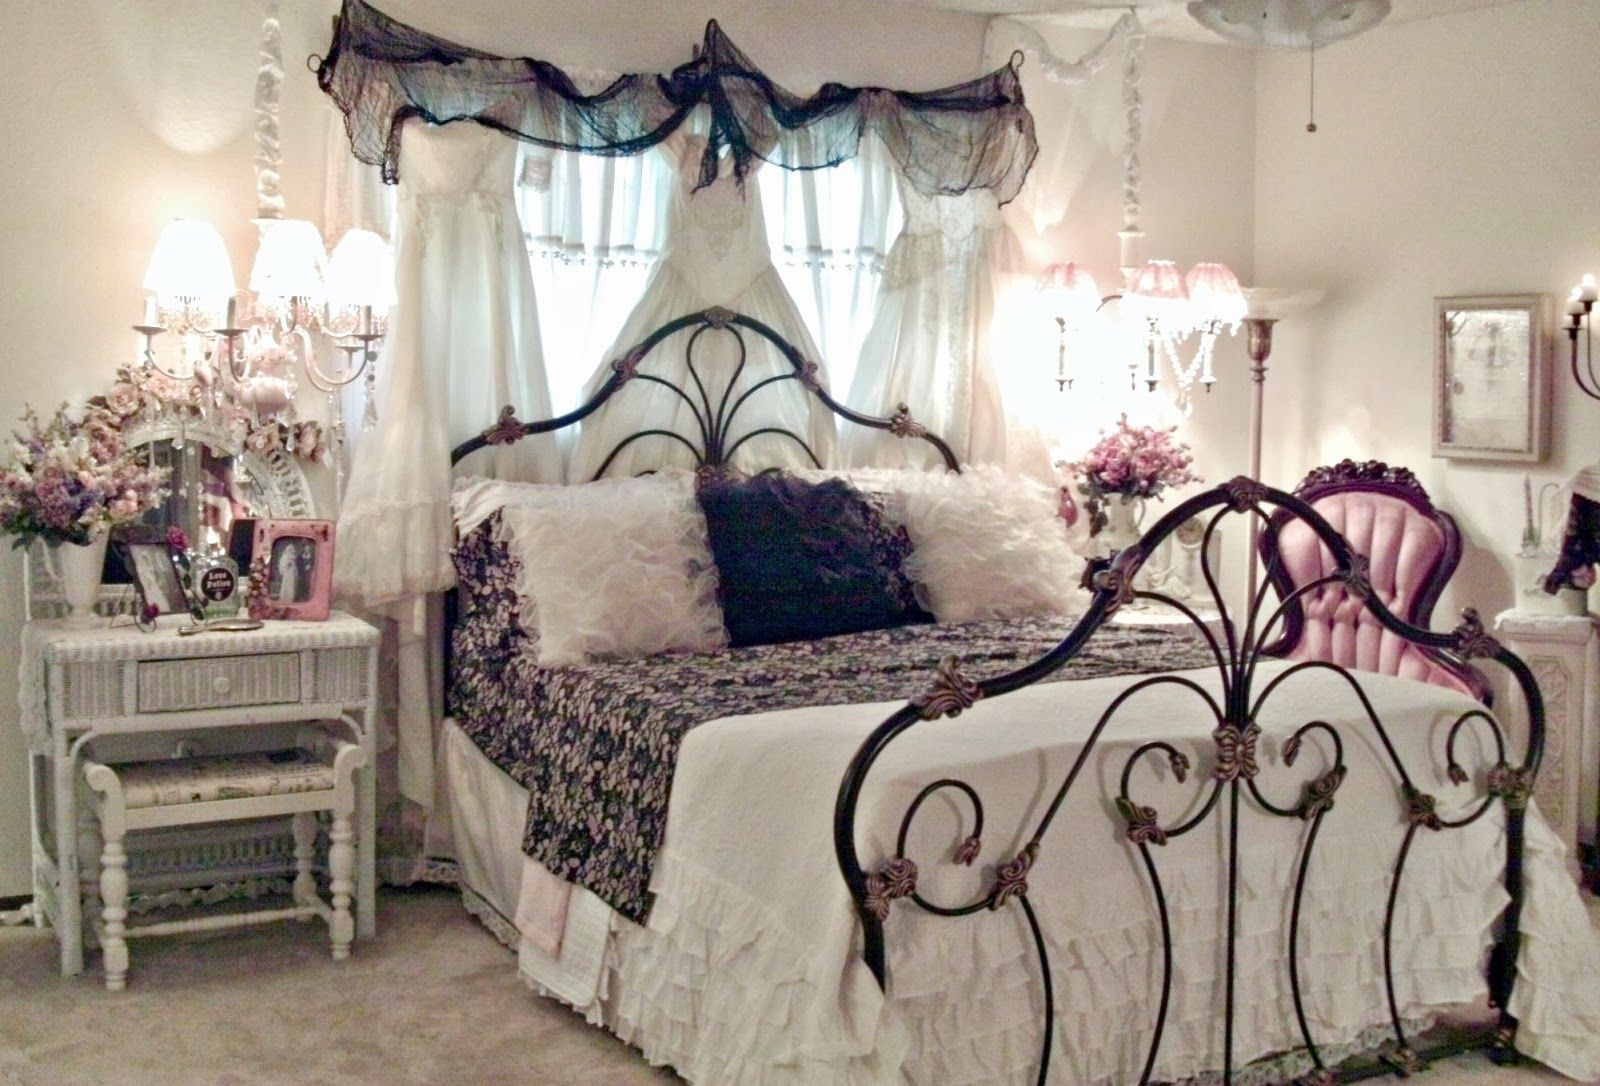 glam bedroom shabby chic bedrooms bedroom vintage glam on cute bedroom decor ideas for teen romantic bedroom decorating with light and color id=84407